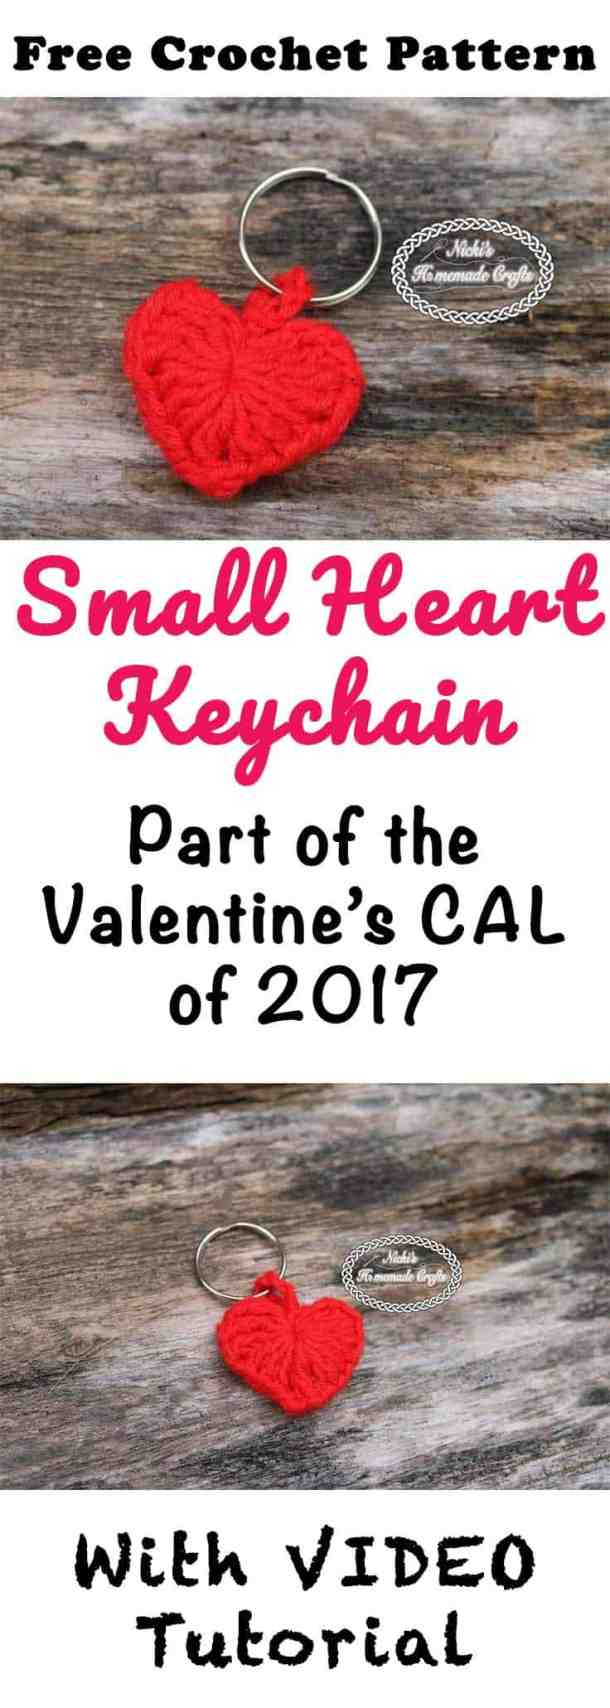 Small Heart Keychain - Free Crochet Pattern by Nicki's Homemade Crafts #crochet #heart #keychain #valentinesday #crochetalong #love